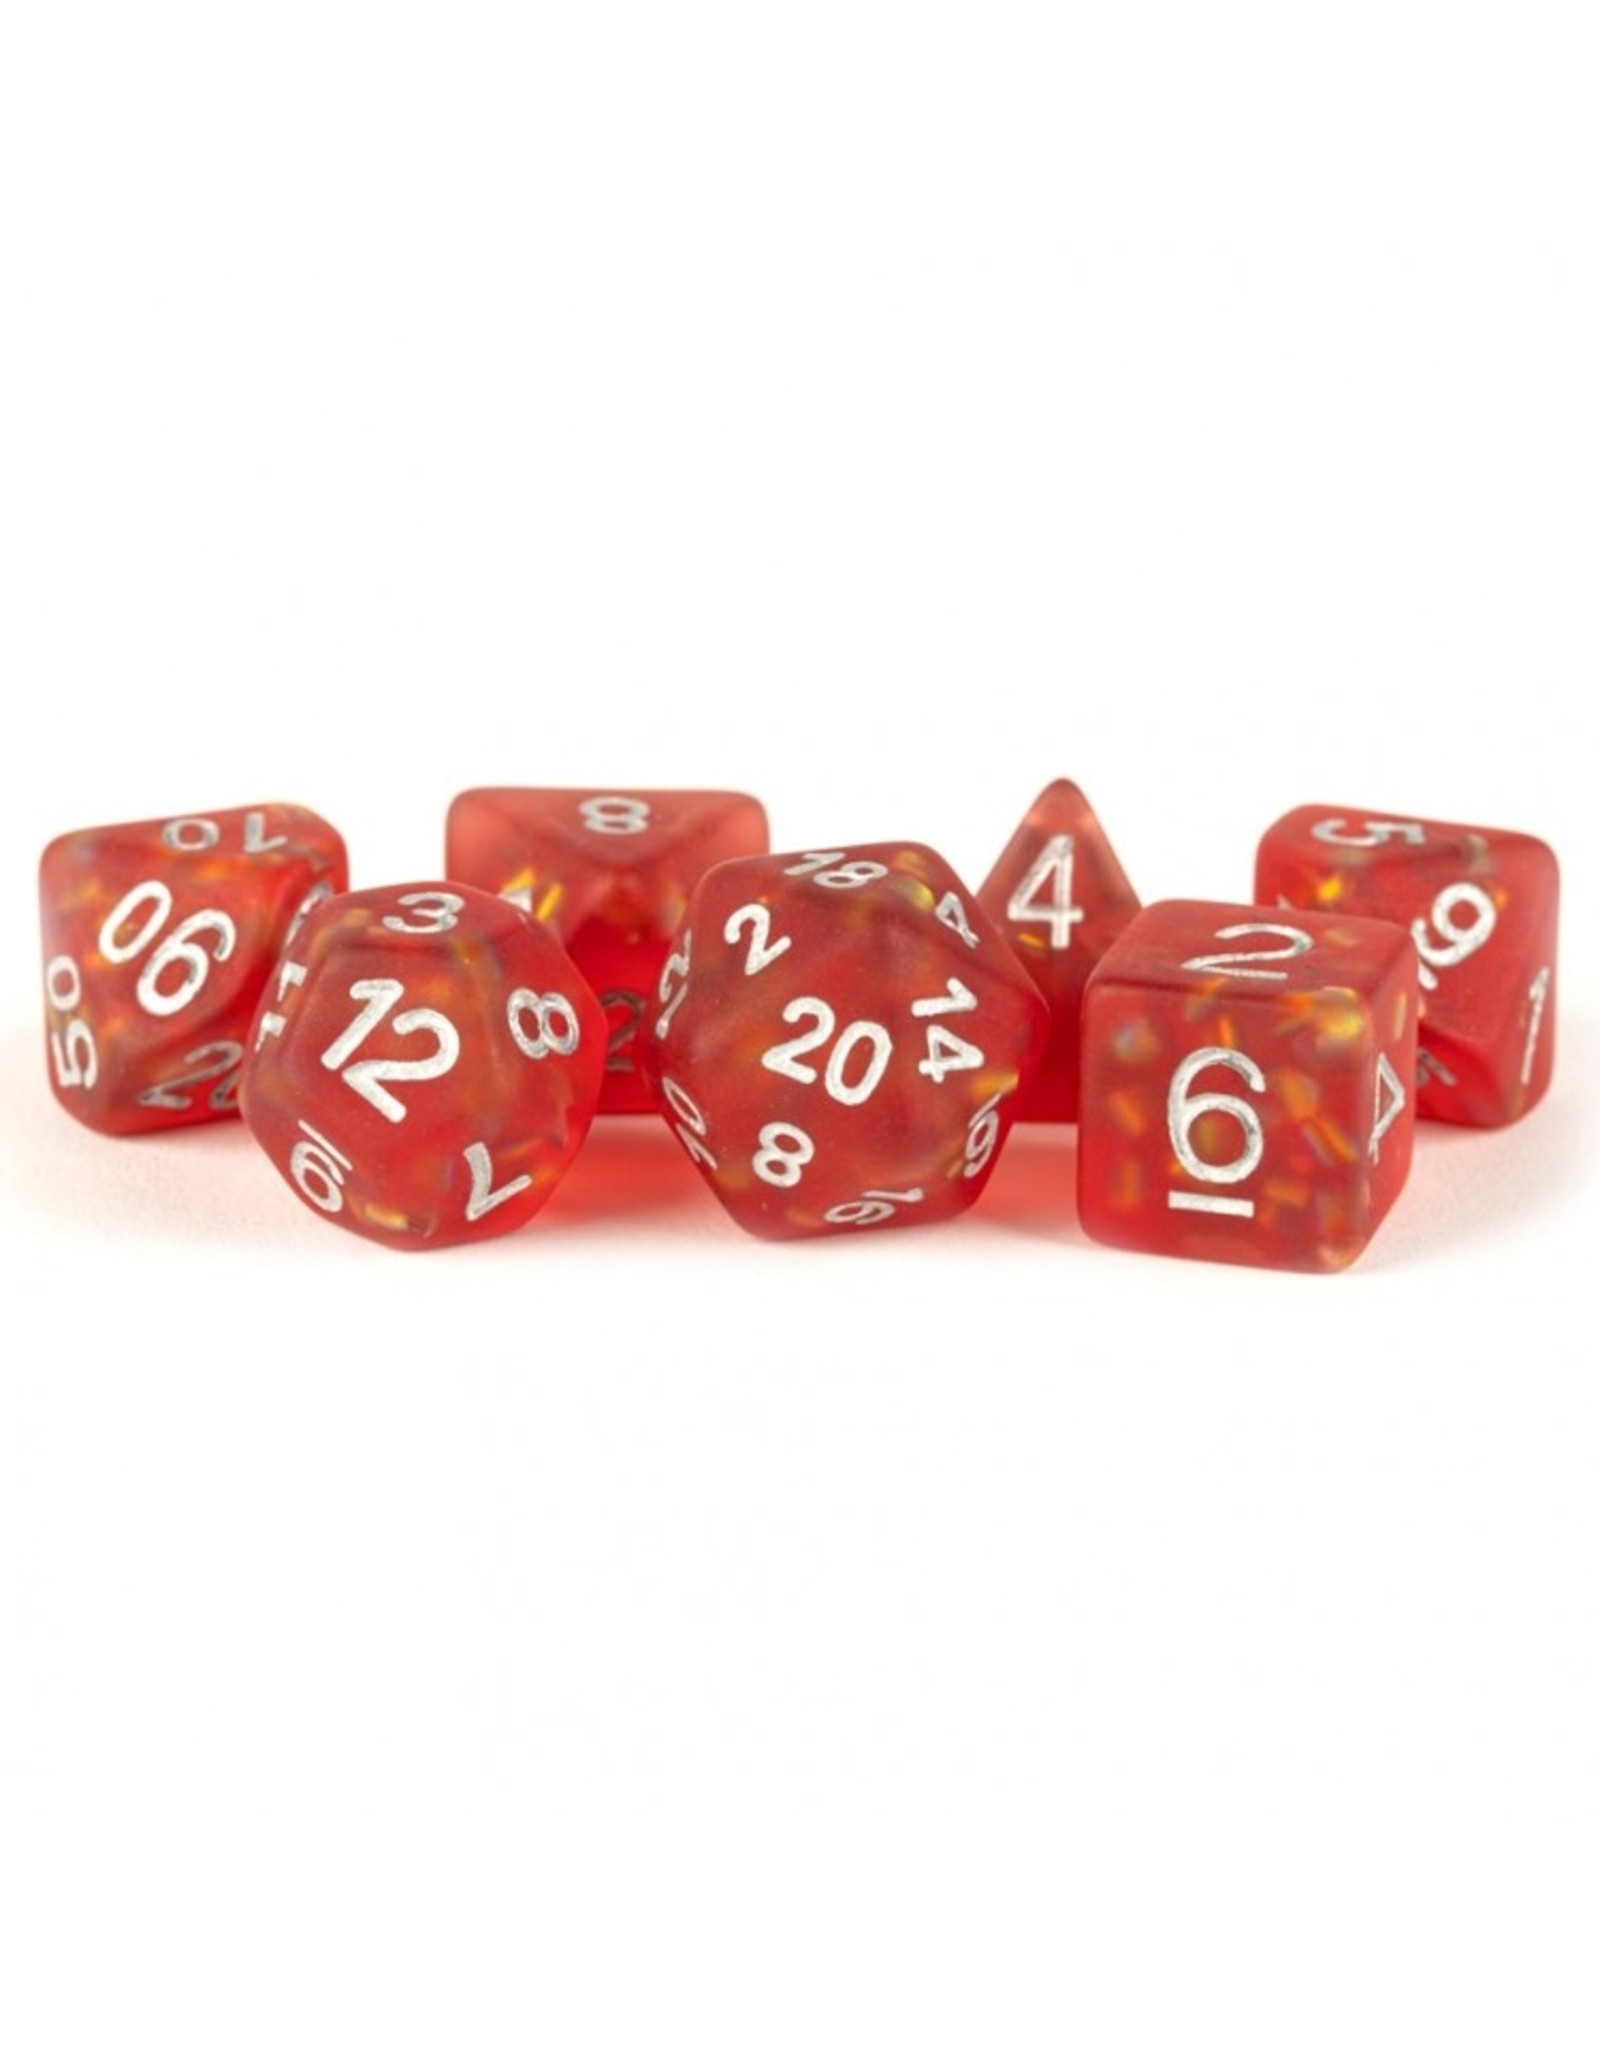 Dice 7-Set: Icy Opal Red Silver